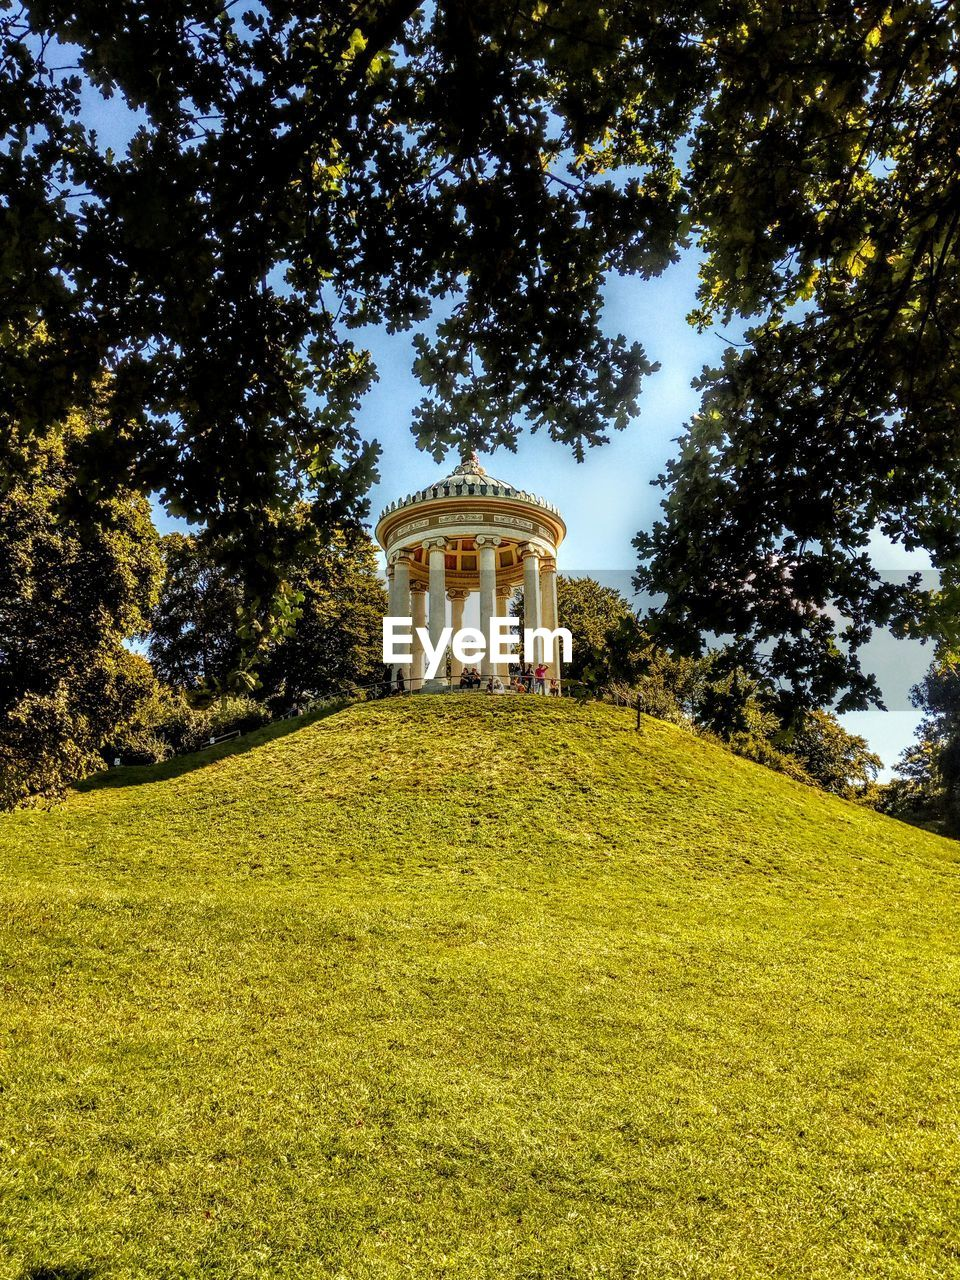 plant, tree, grass, architecture, built structure, green color, growth, nature, building exterior, land, no people, day, sky, field, outdoors, the past, history, travel destinations, sunlight, gazebo, architectural column